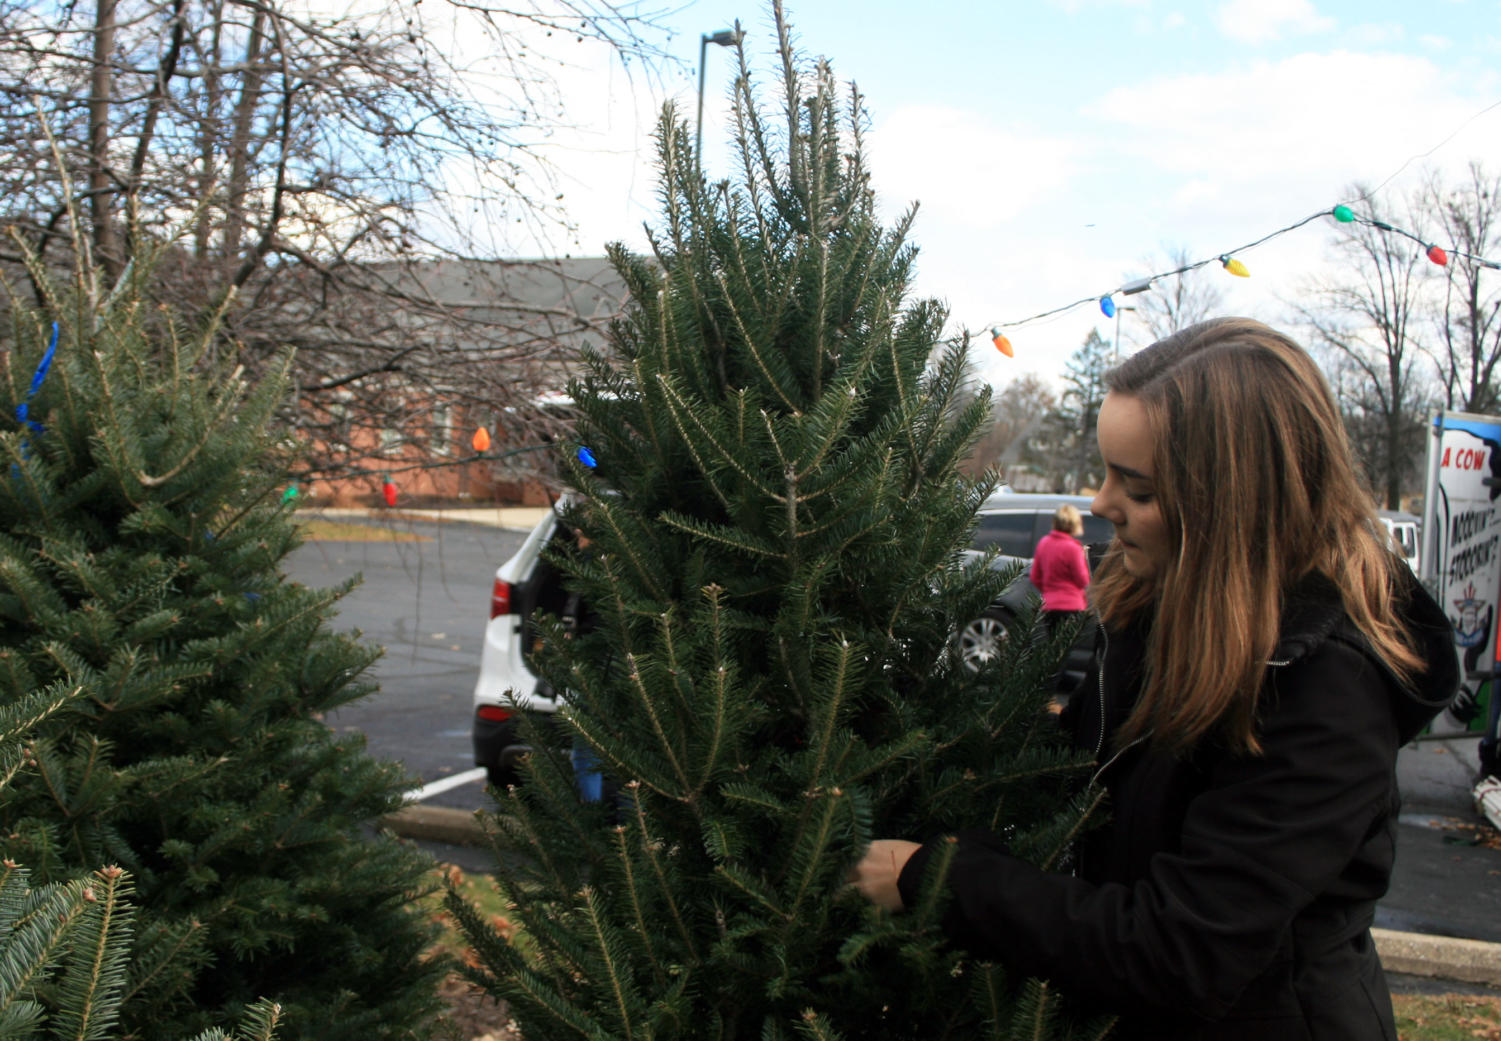 Junior Natalie Walters displays a Christmas tree that her church is selling to raise money for their youth mission trips. Walters said this is a good way to help out the church as well as the community.